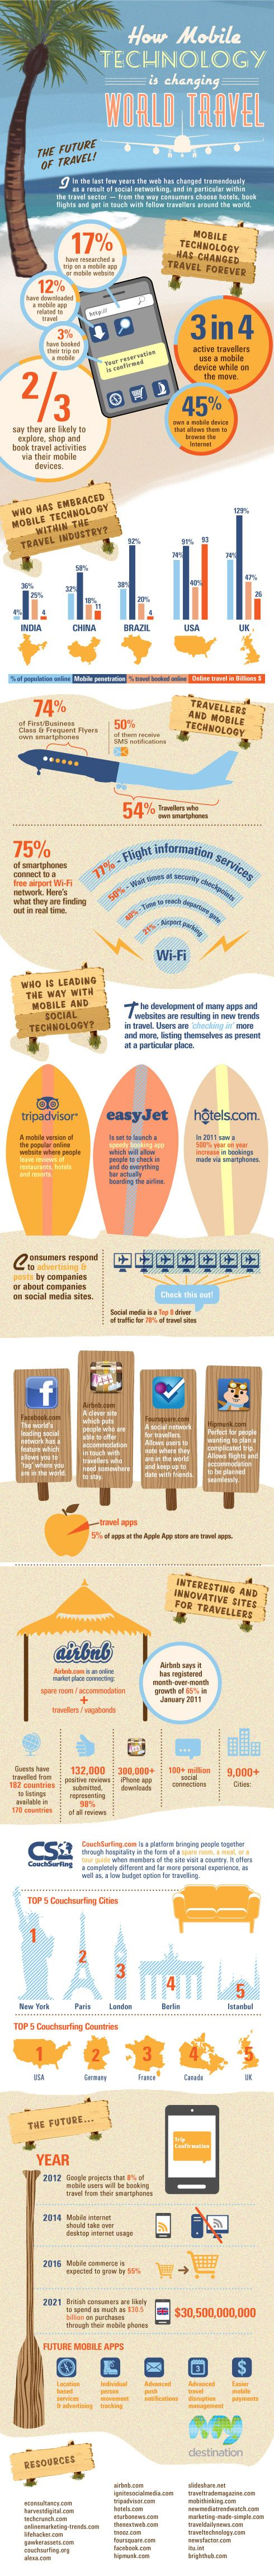 Mobile Technology and Travel